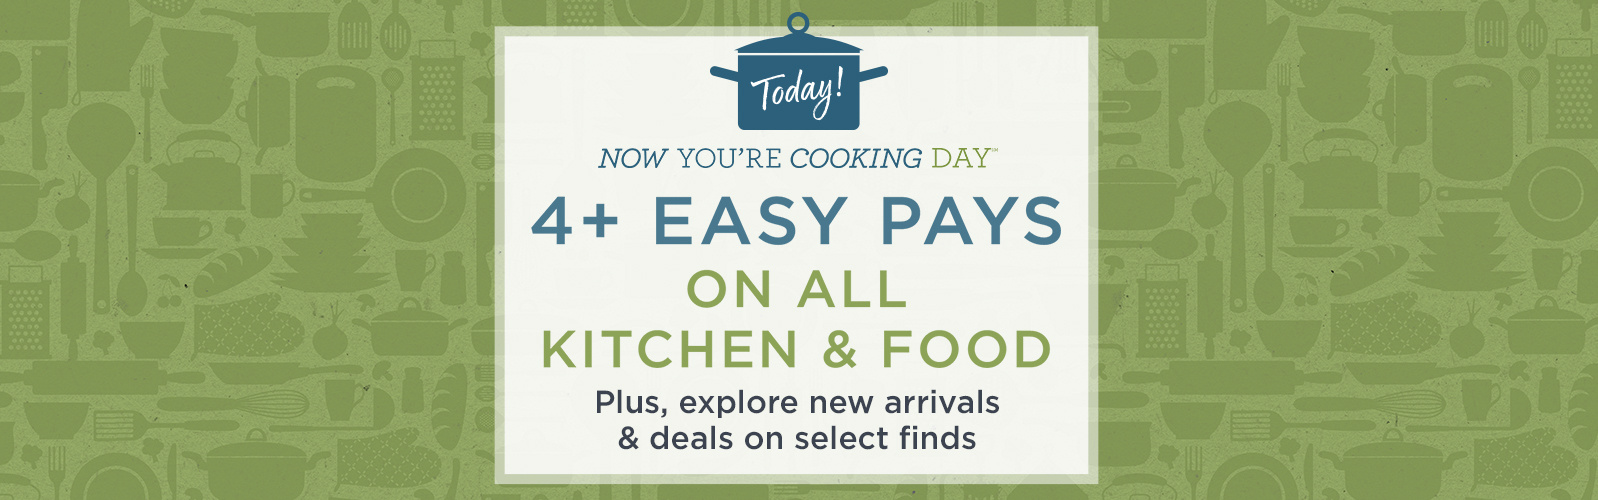 4+ Easy Pays on ALL Kitchen & Food — Today! Plus, explore new arrivals & deals on select finds